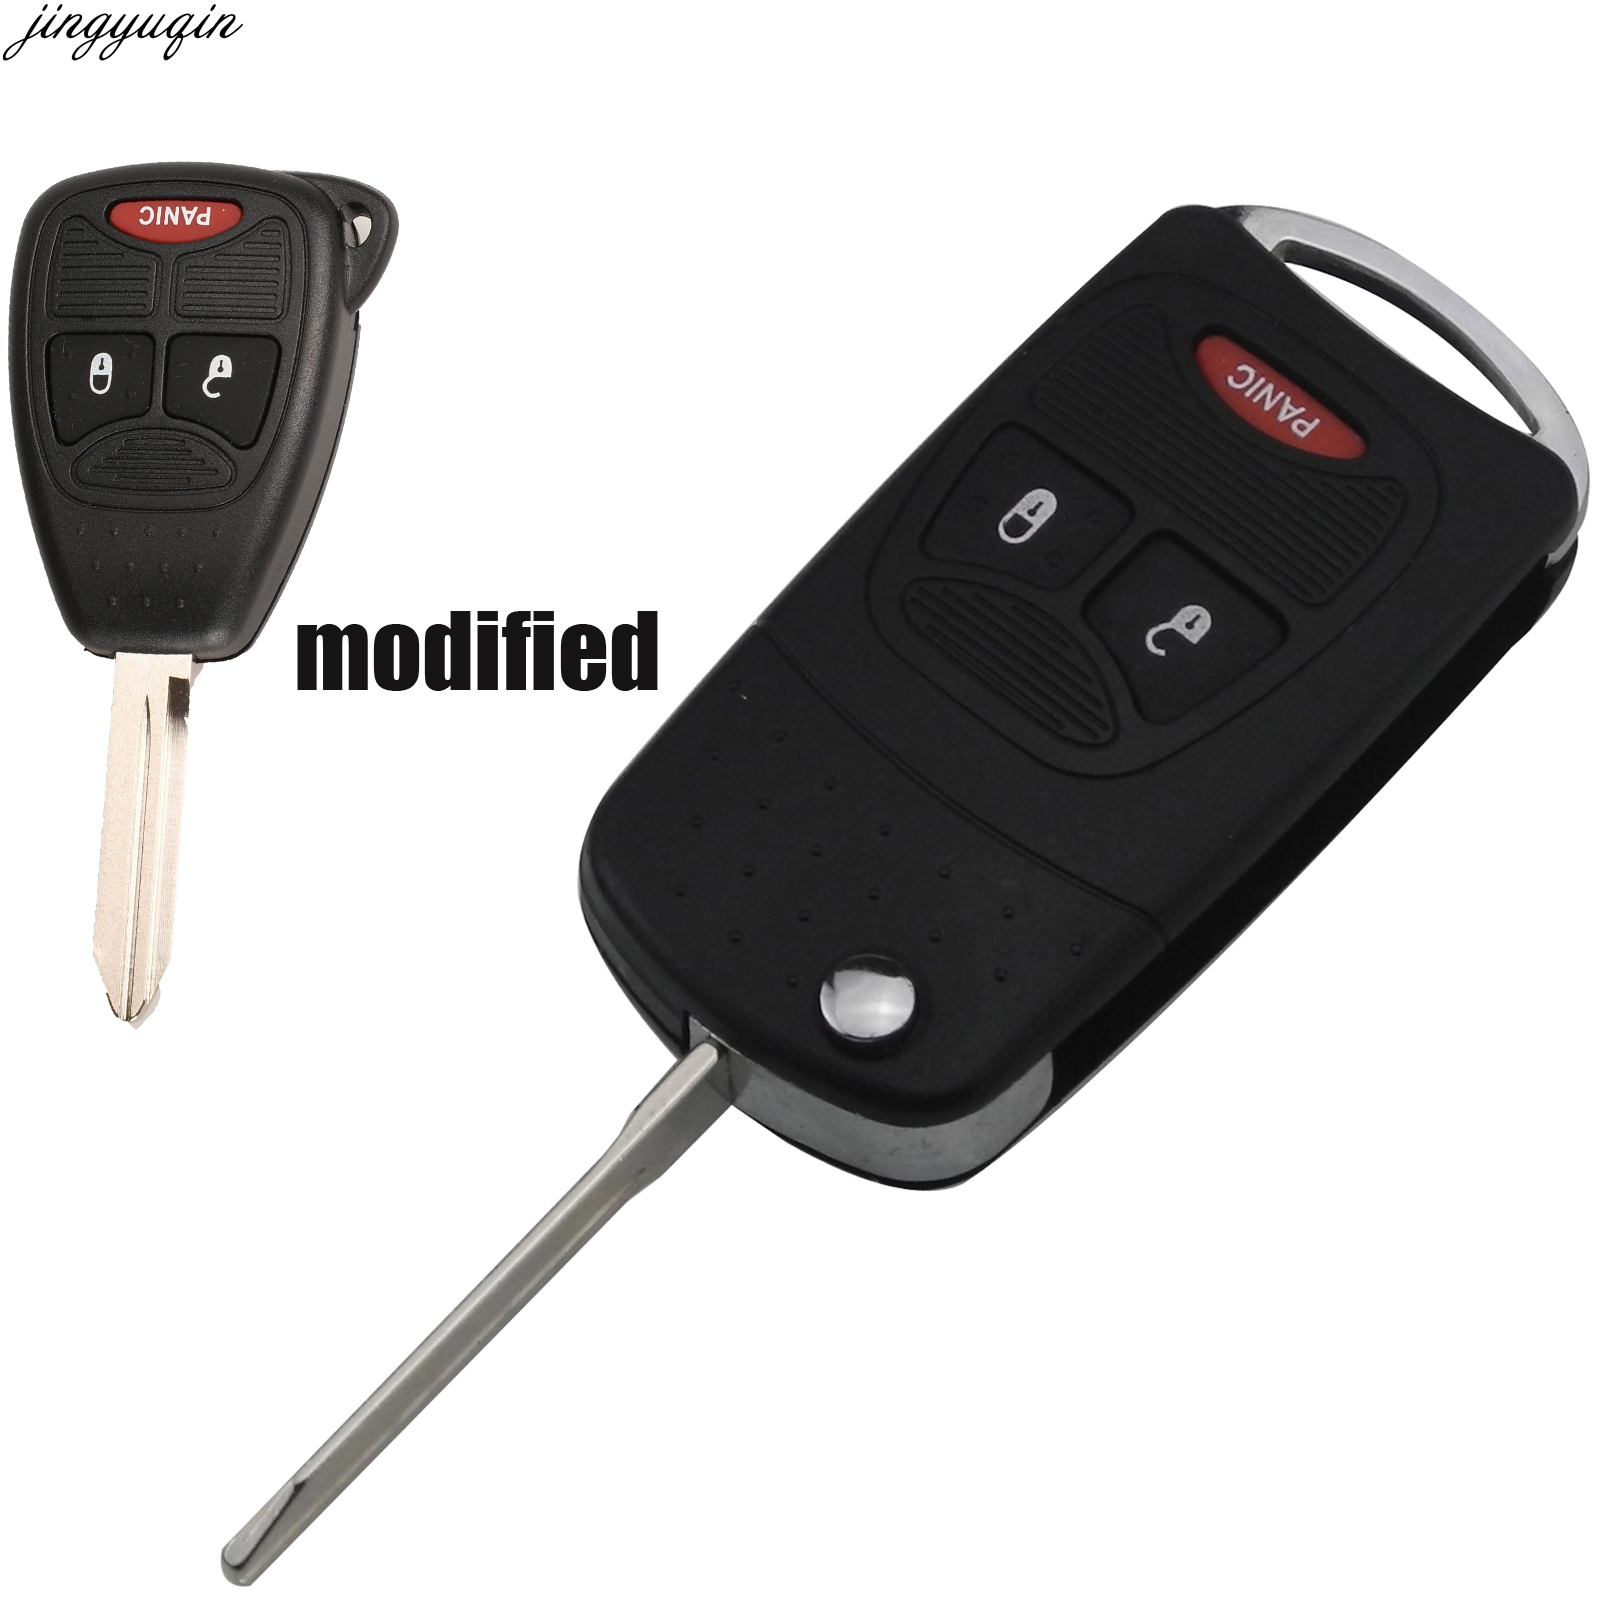 New Remote Chrysler Dodge Key Keyless Fob Replacement Case Button Pad Battery